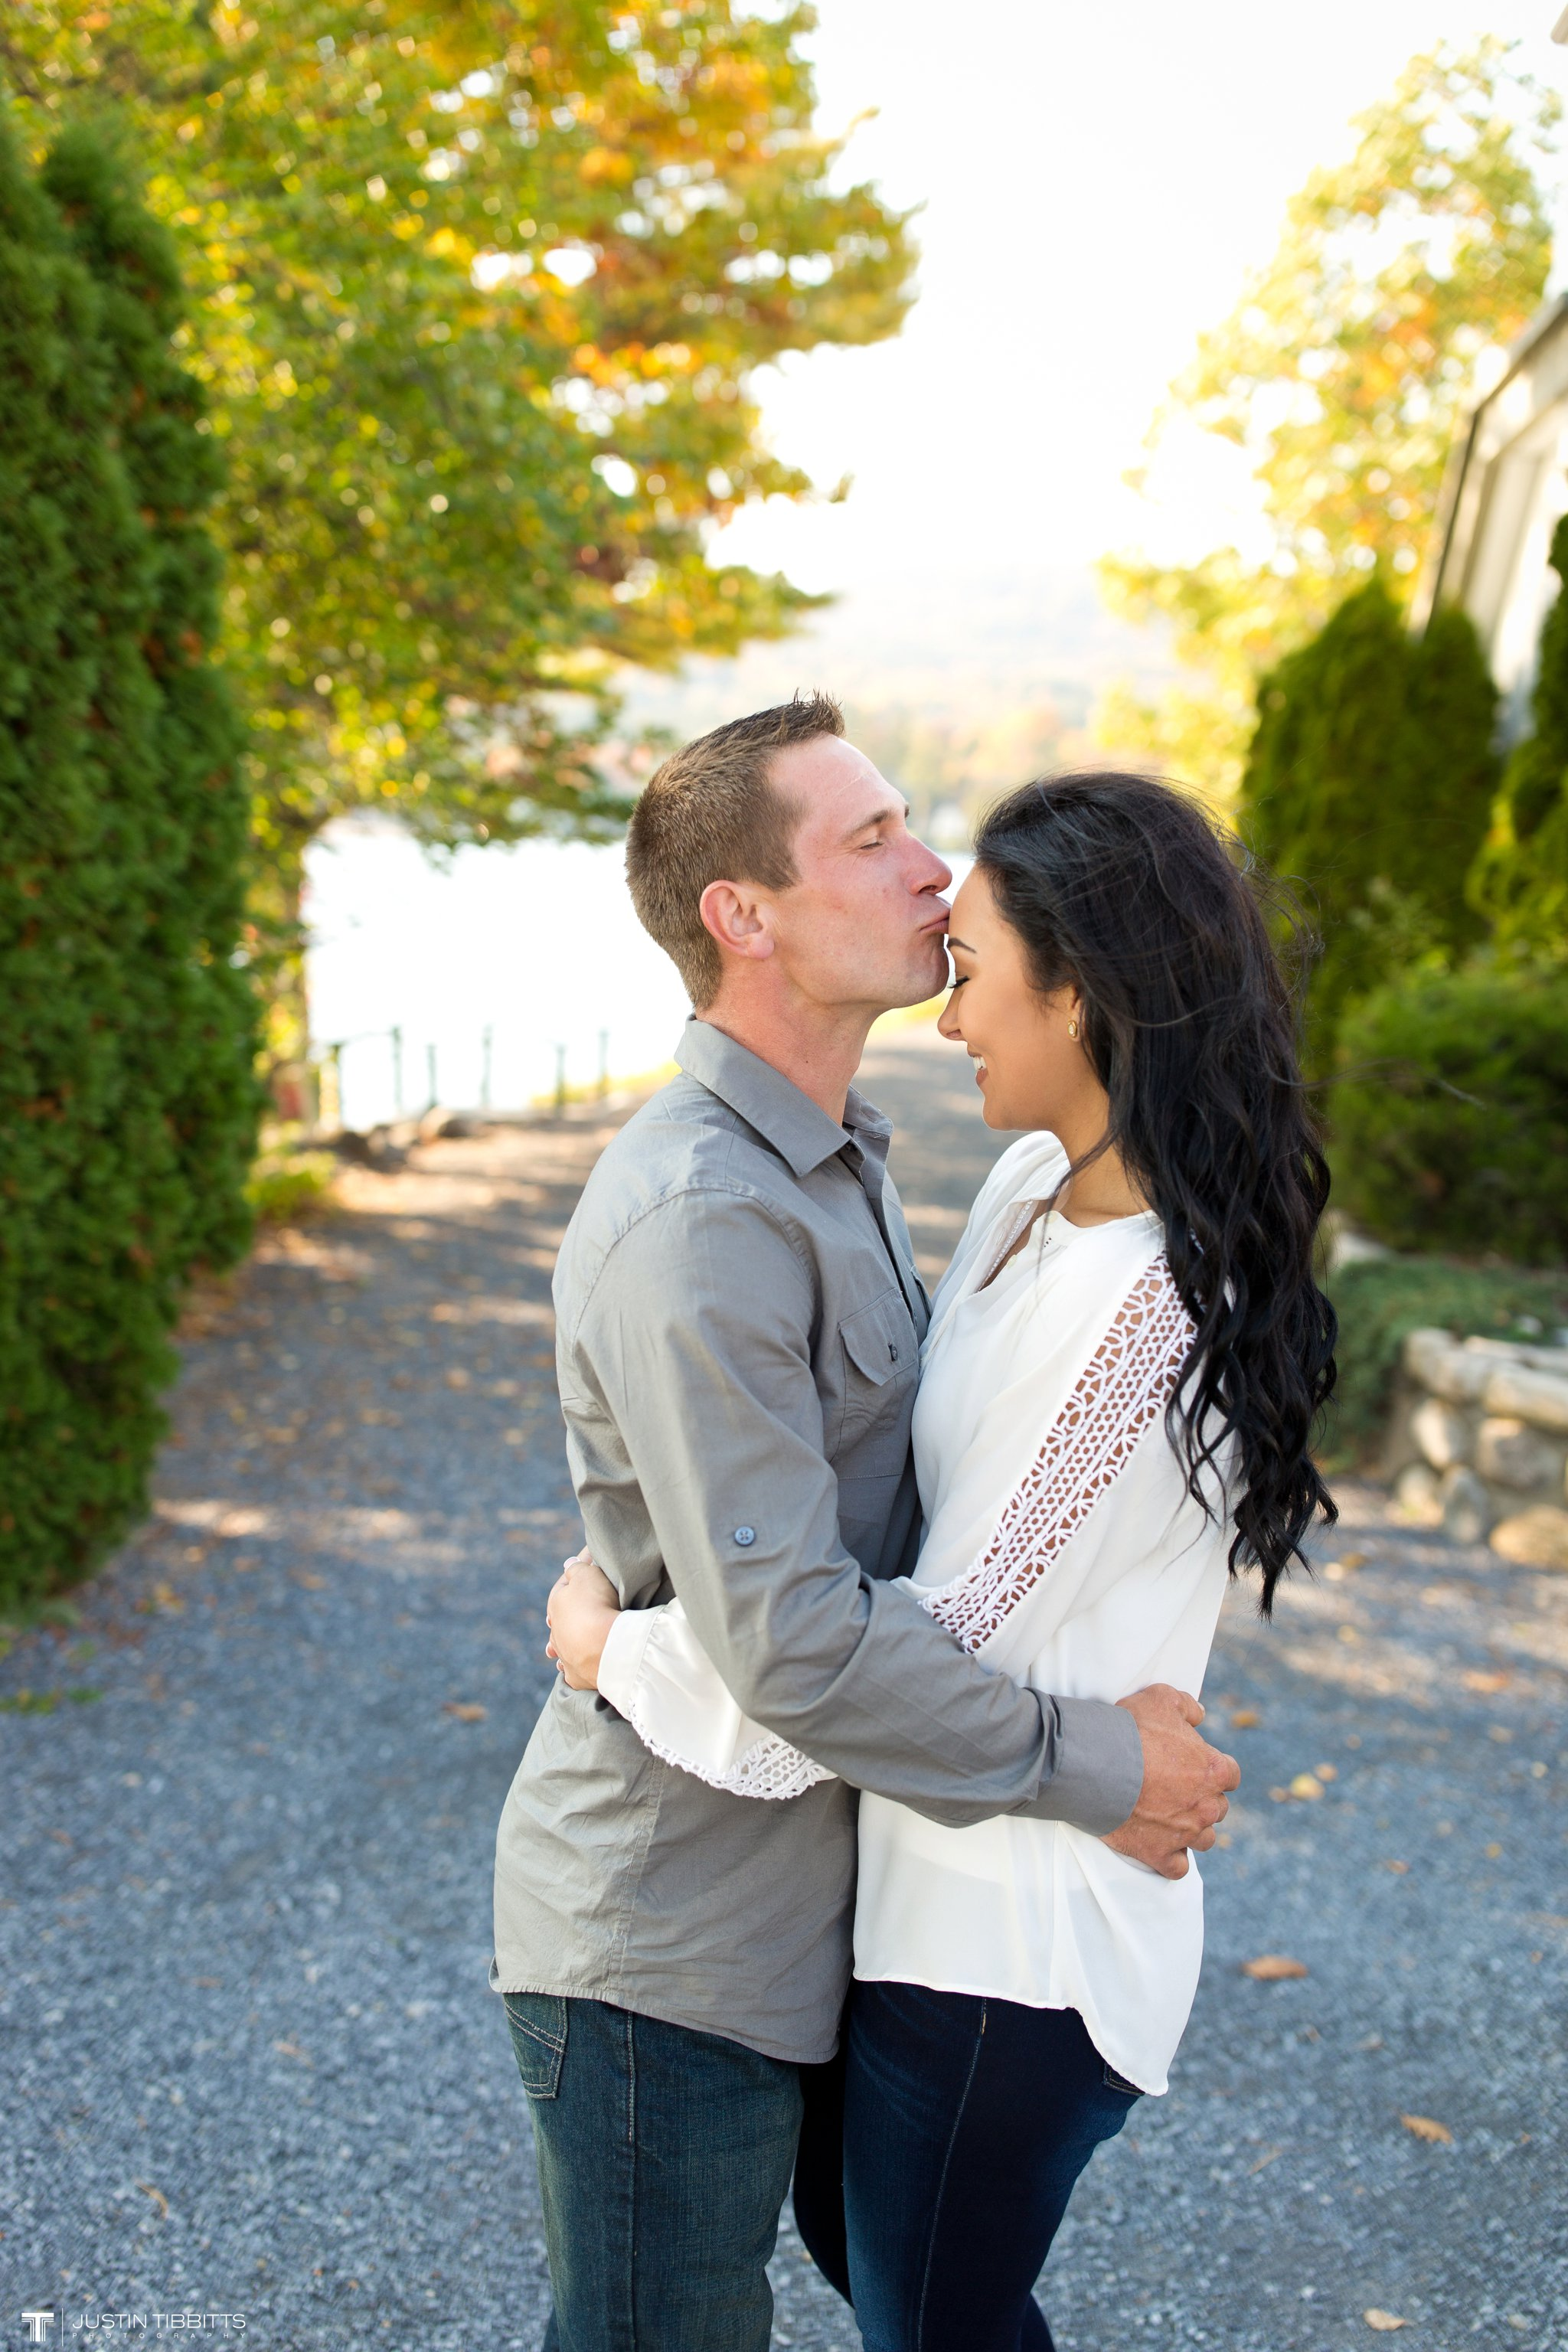 sagamore-engagement-photos-by-justin-tibbitts-photography-with-laina-and-mike_0013